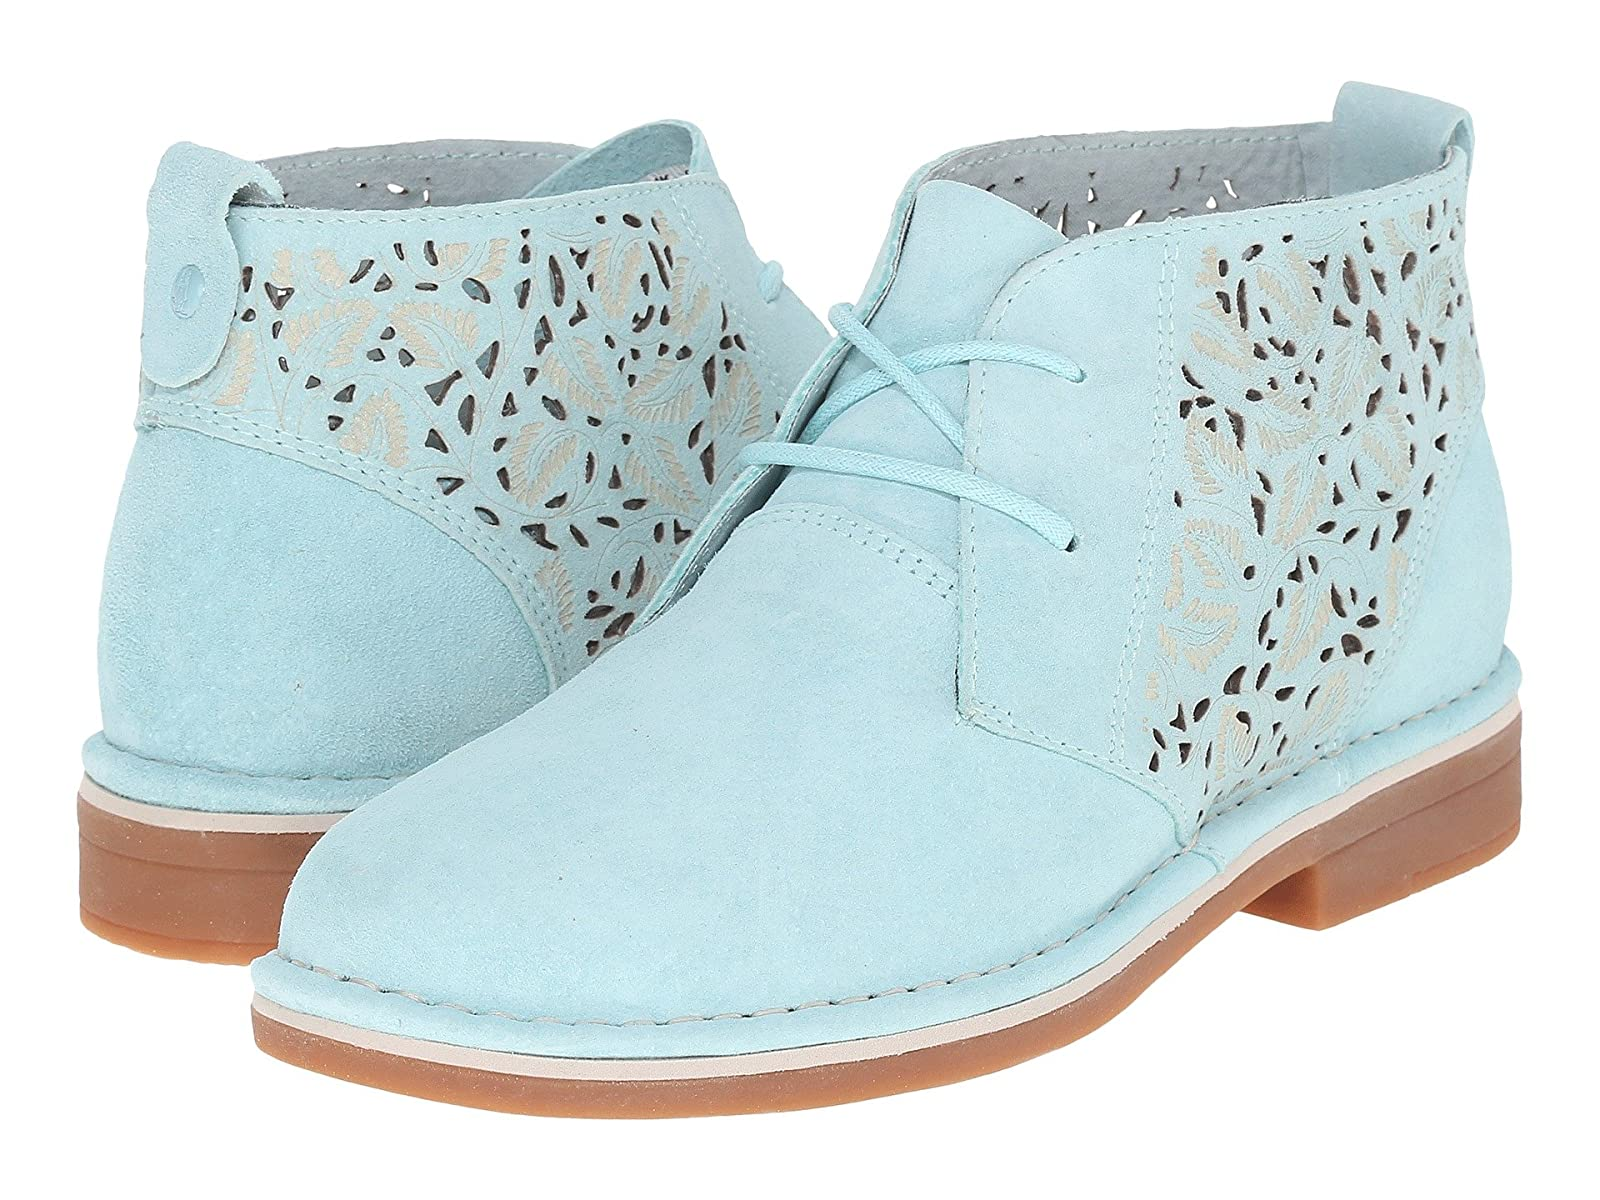 Hush Puppies Cyra Catelyn IICheap and distinctive eye-catching shoes